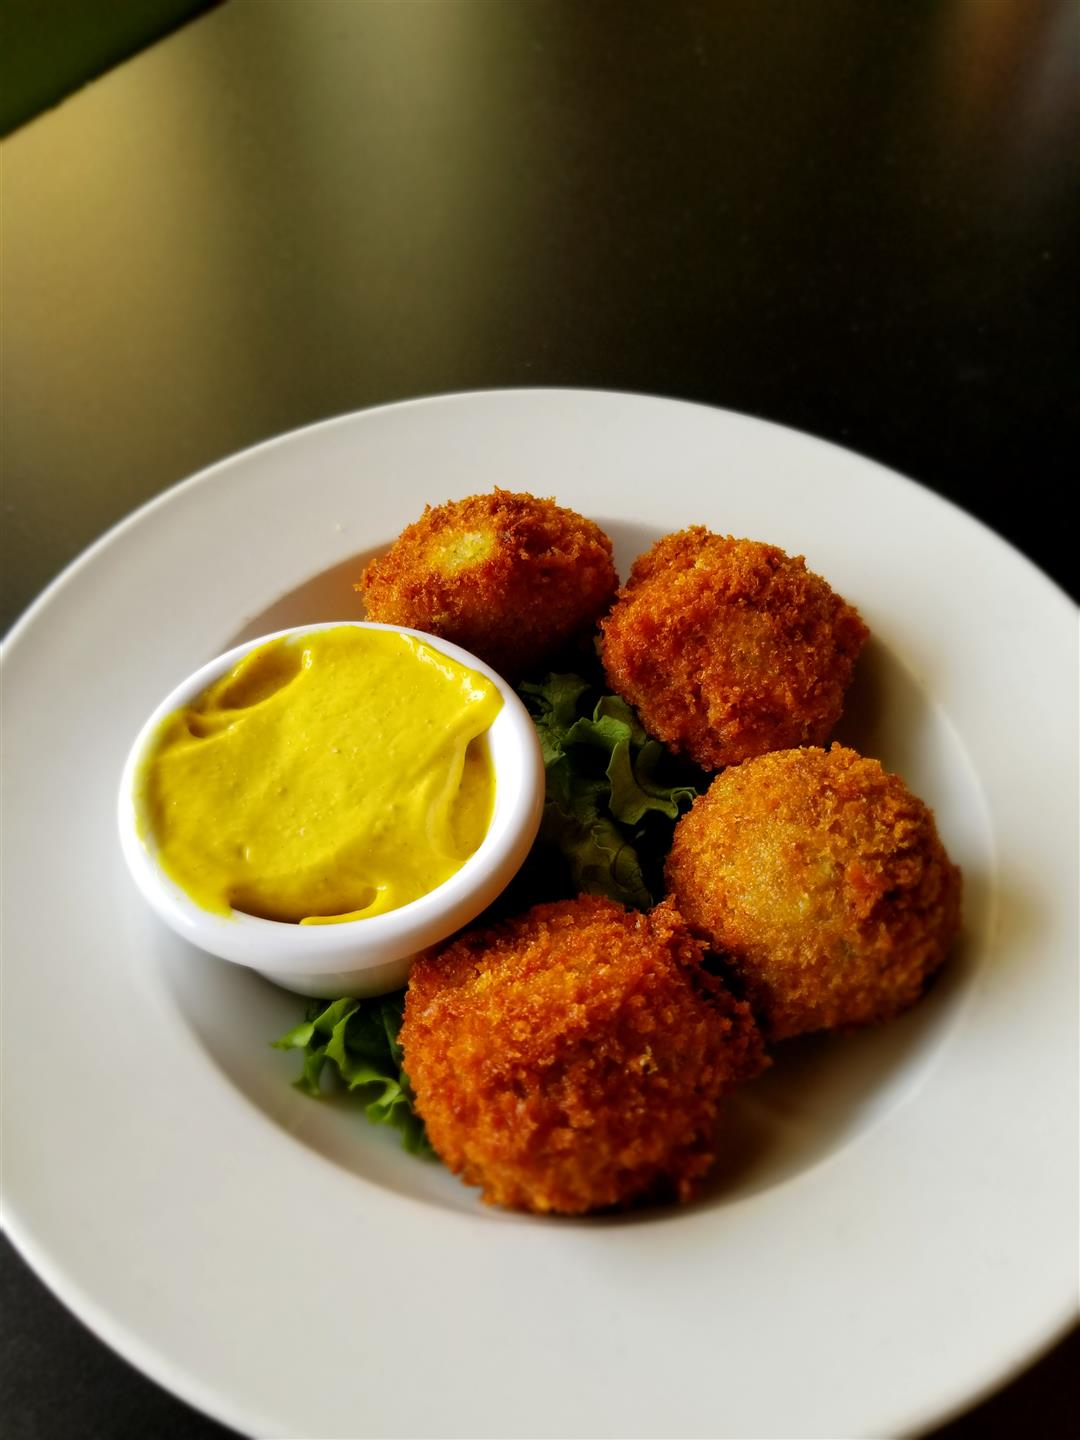 hush puppies with mustard for dipping